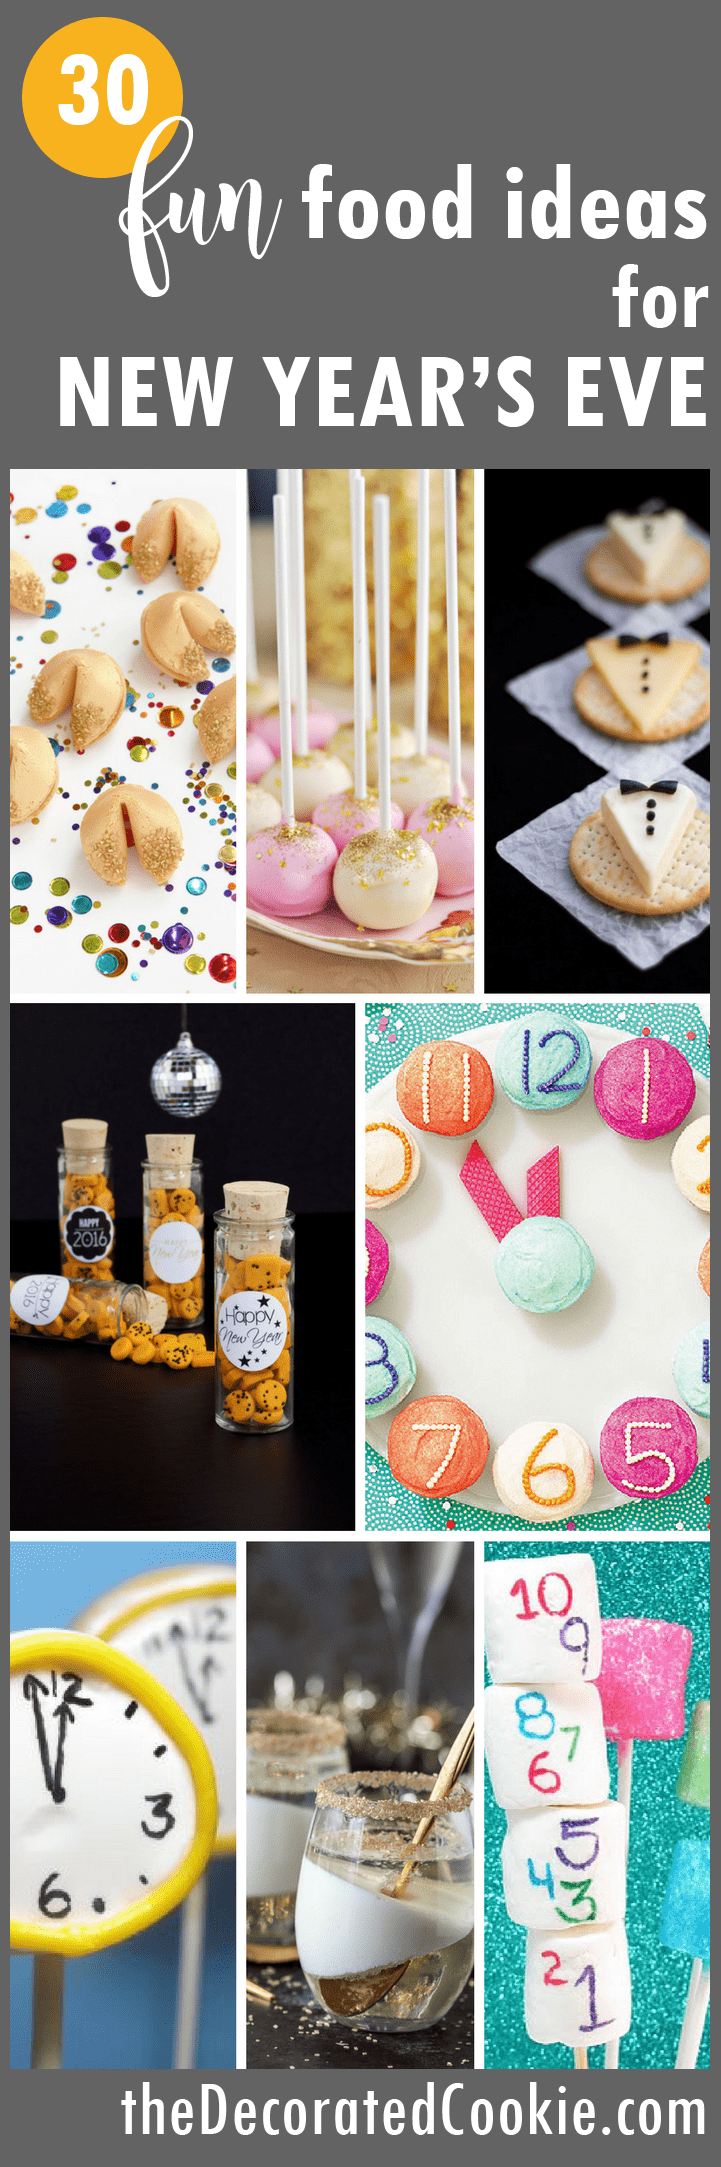 A roundup of fun food ideas for your New Year's Eve party.